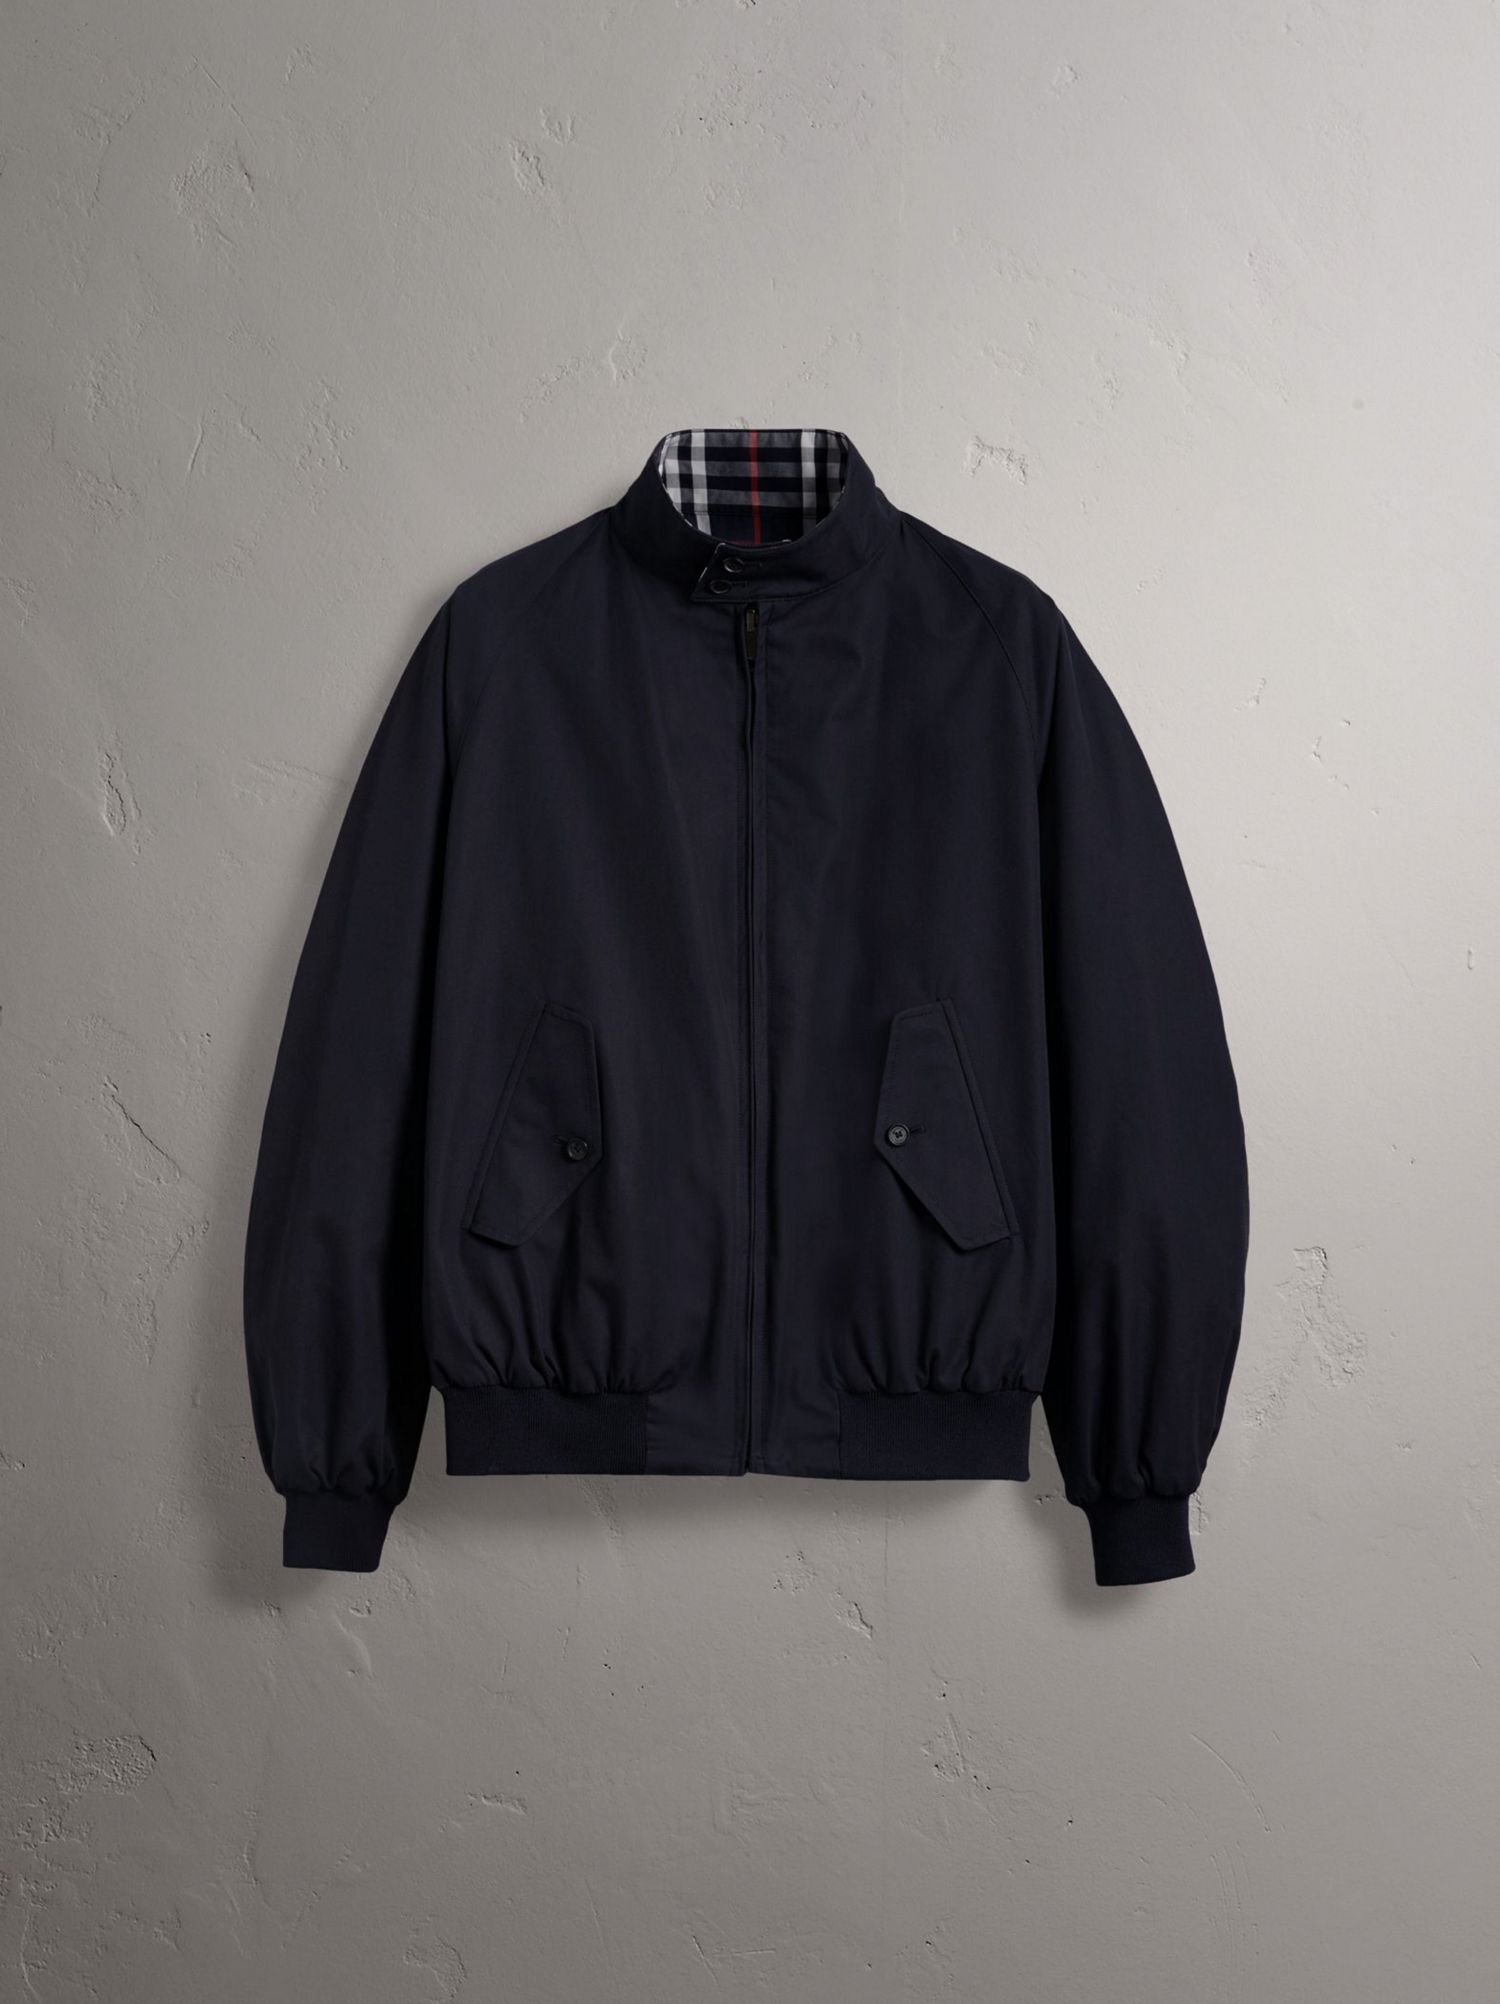 Gosha x Burberry Reversible Harrington Jacket in Navy